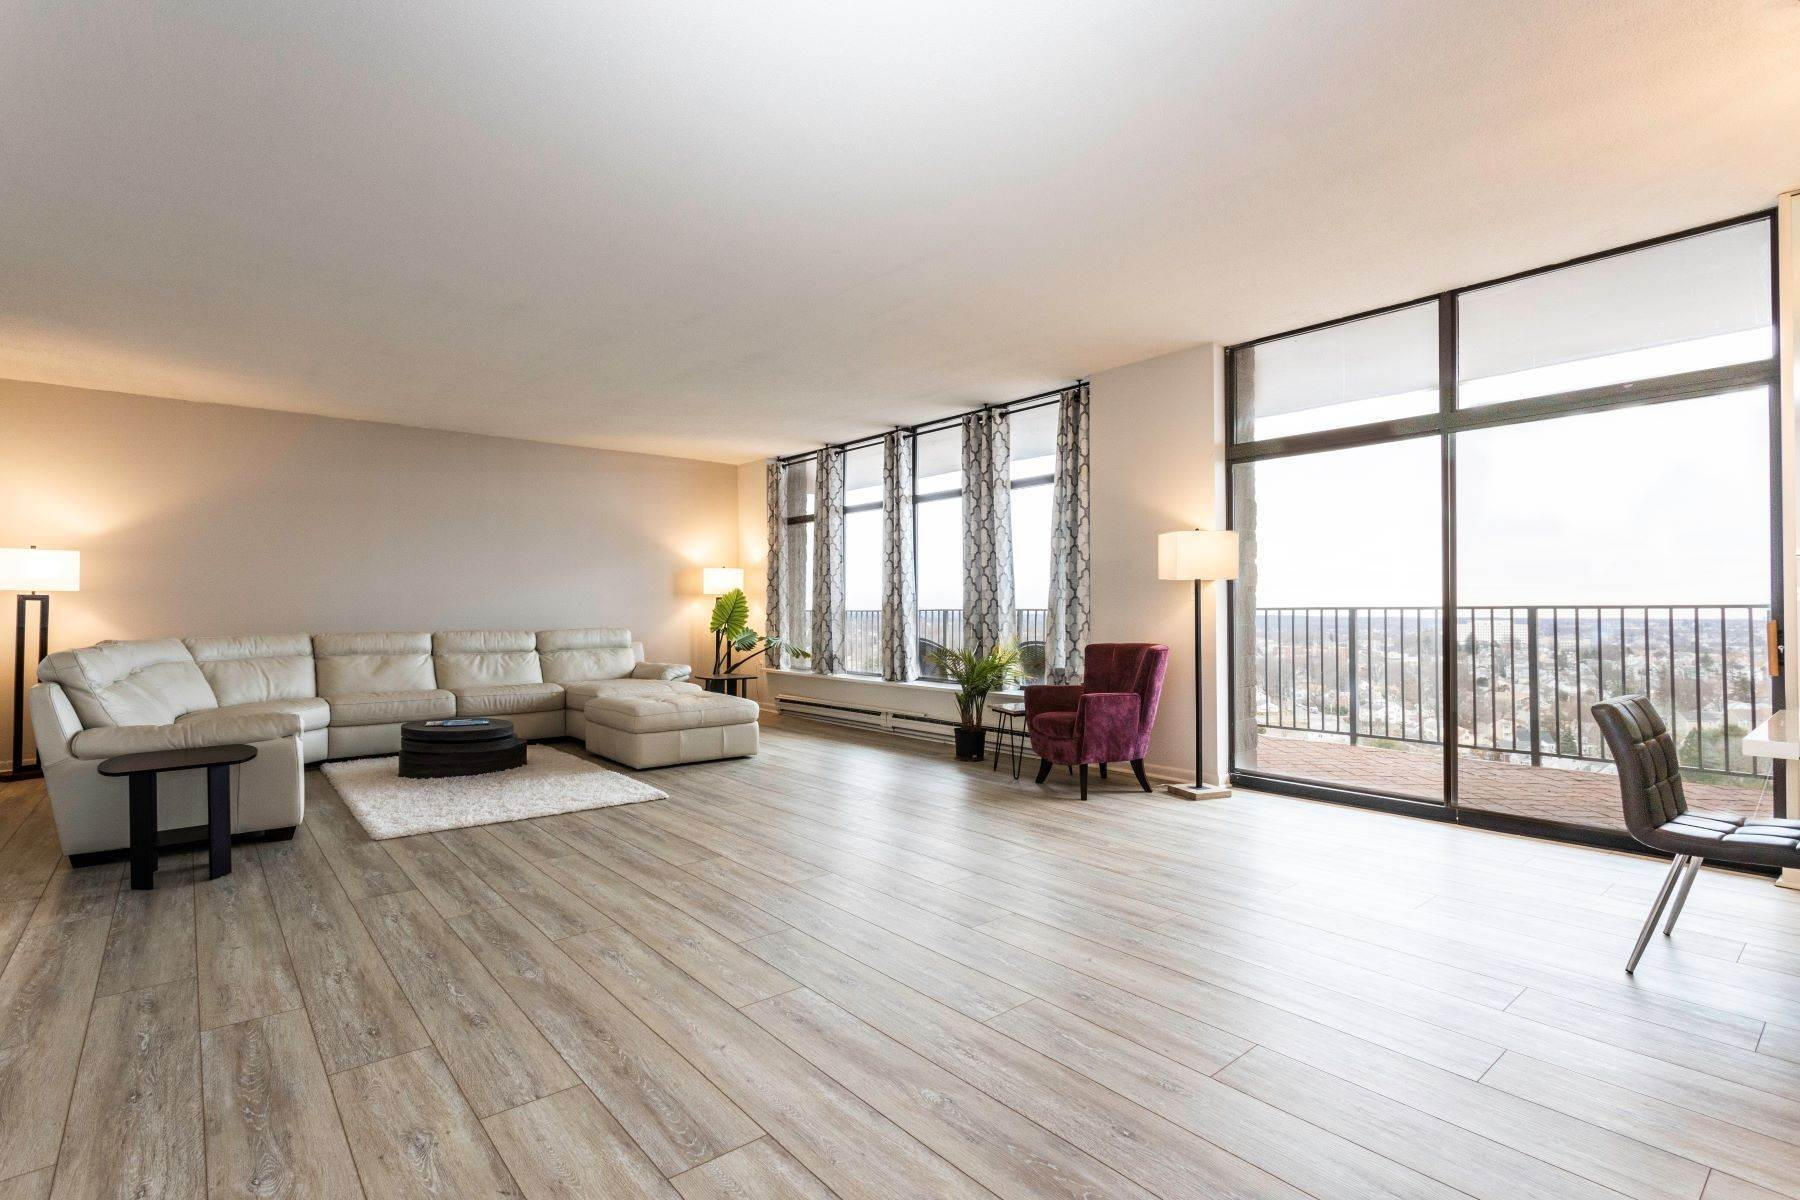 Condominiums for Sale at Beautiful, Airy, and Spacious Condo 3200 Park Avenue, 11F2 Bridgeport, Connecticut 06604 United States